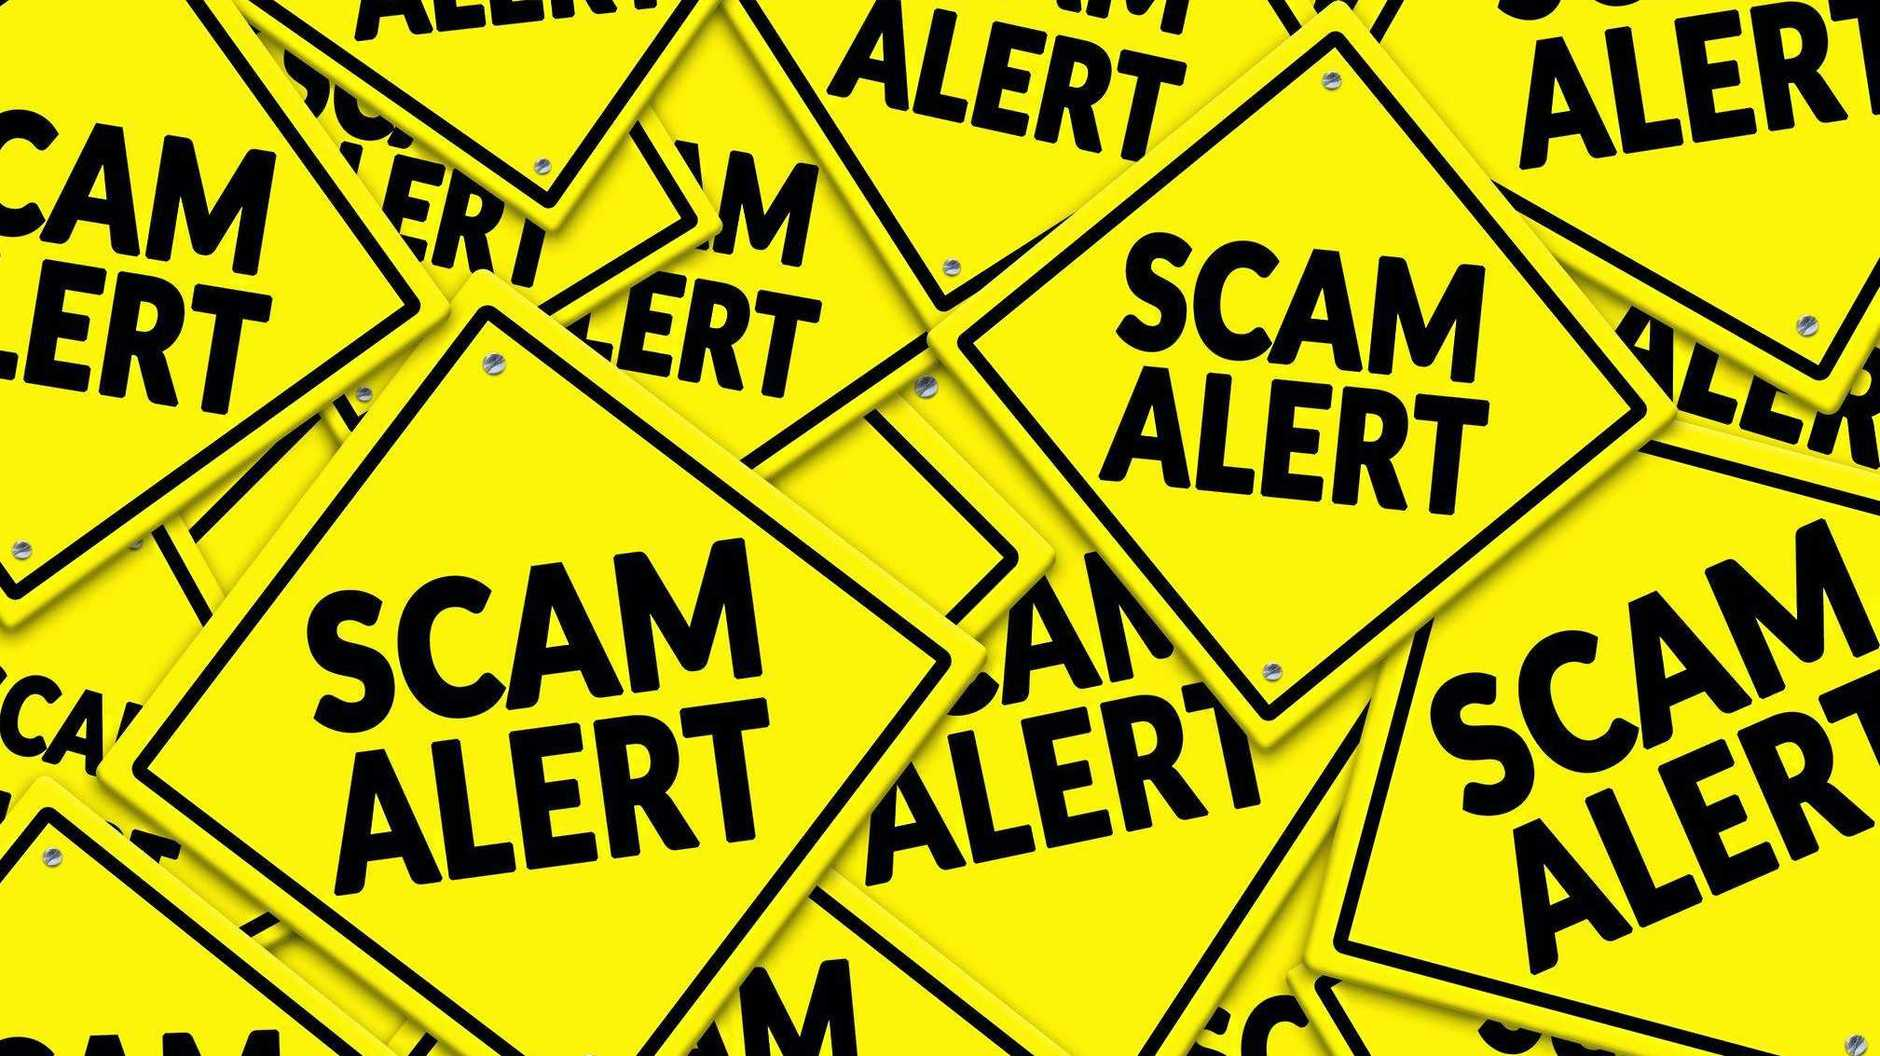 A resident has lost more than $869 after falling for an email scam.